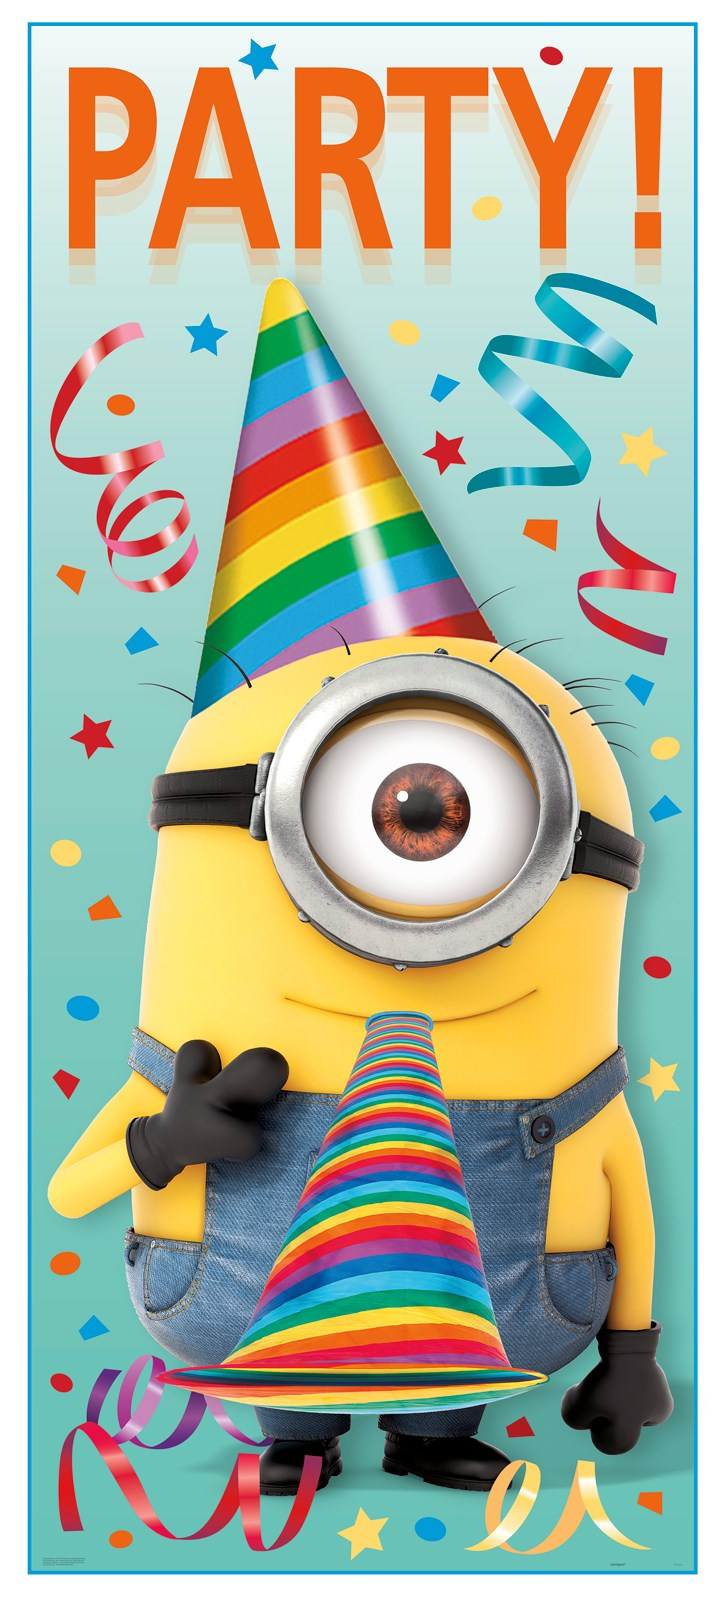 Minions Party Minions Despicable Me Door Cover Birthdayexpresscom